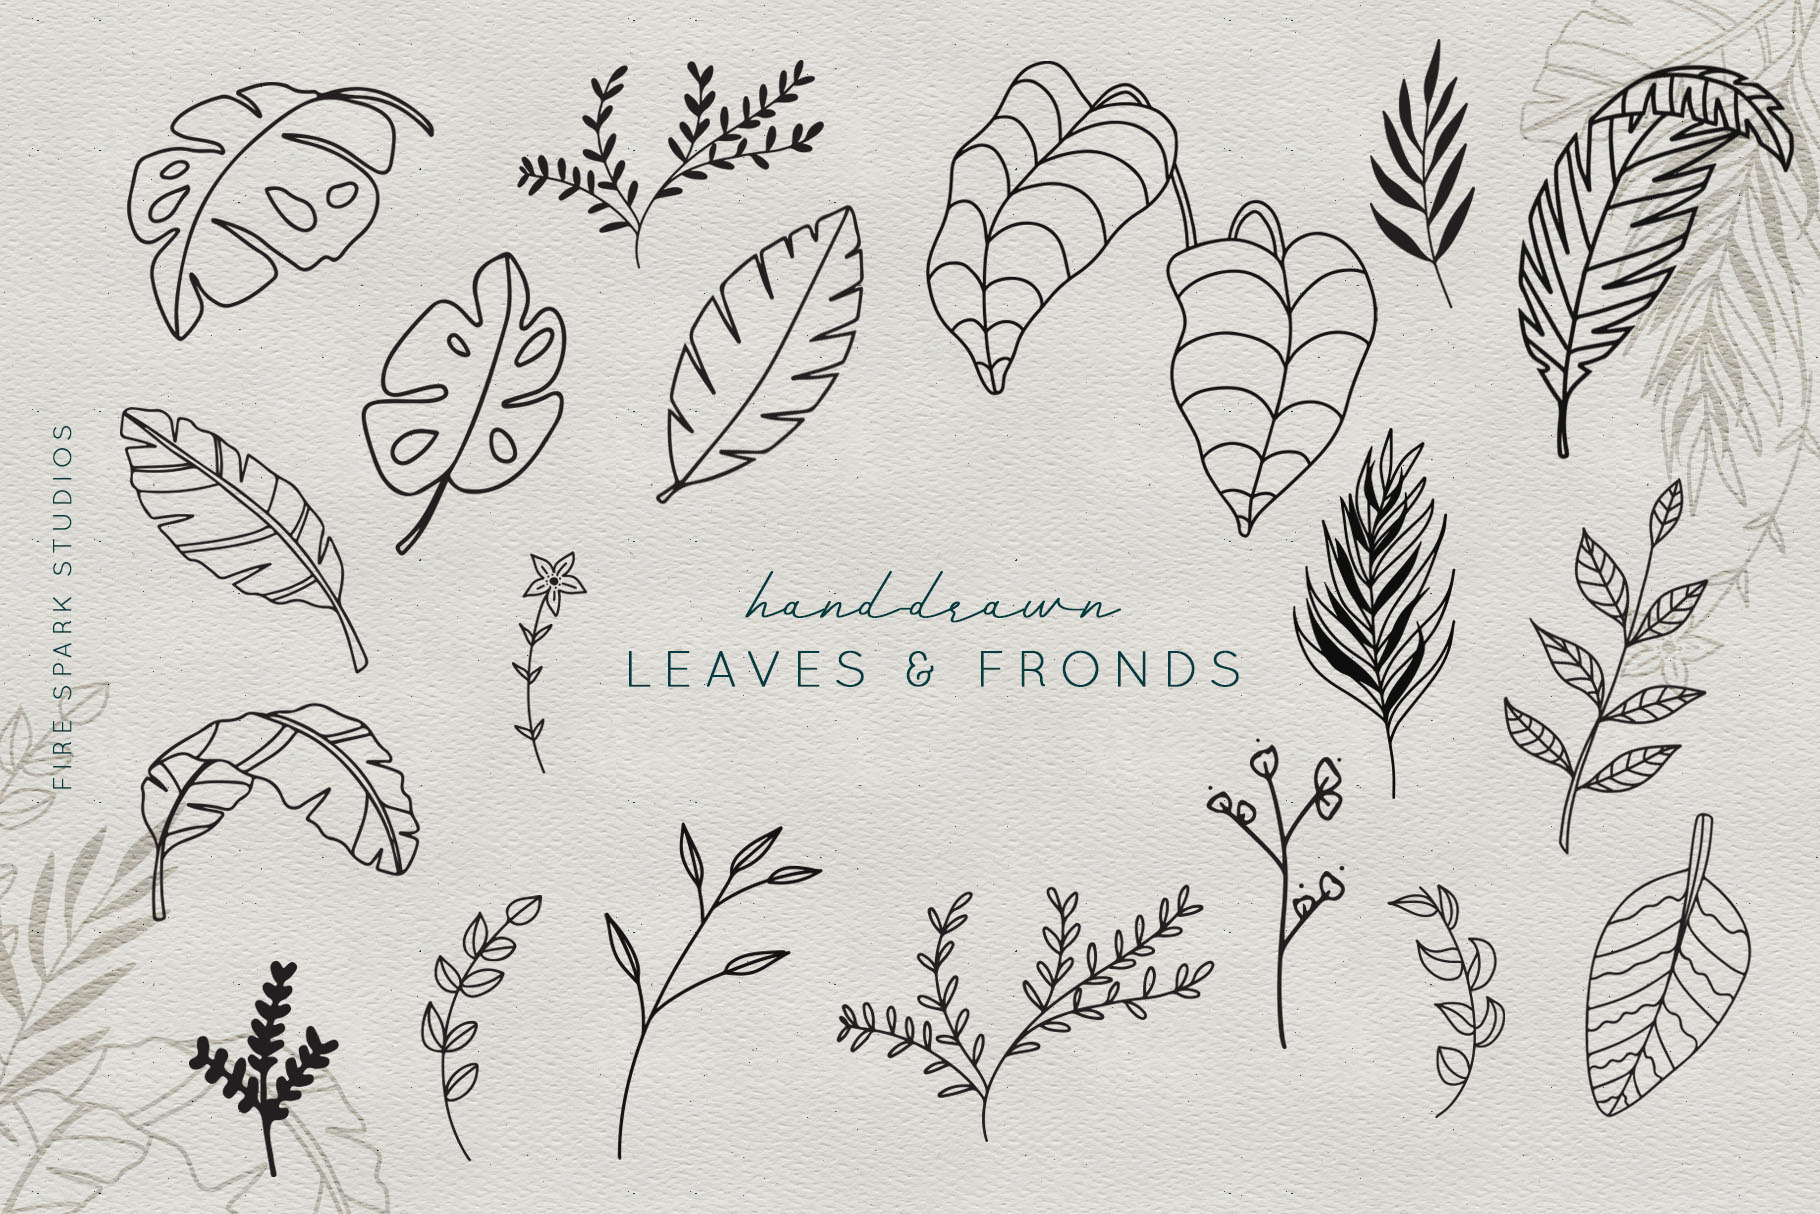 Green Thumb Illustrations & Textures example image 2